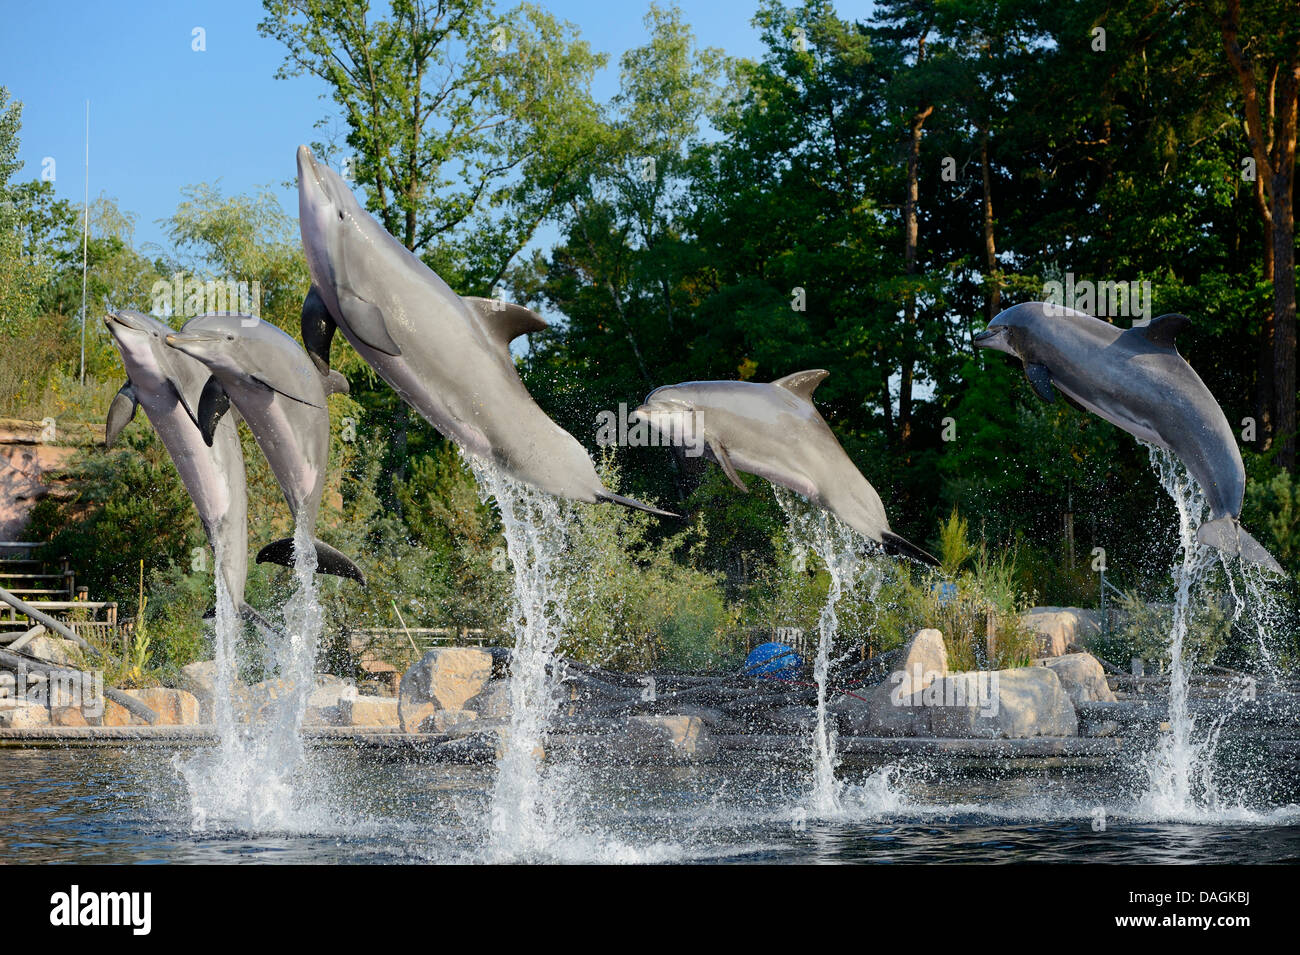 Bottlenosed dolphin, Common bottle-nosed dolphin (Tursiops truncatus), five dolphins making feats in a dolphinarium - Stock Image